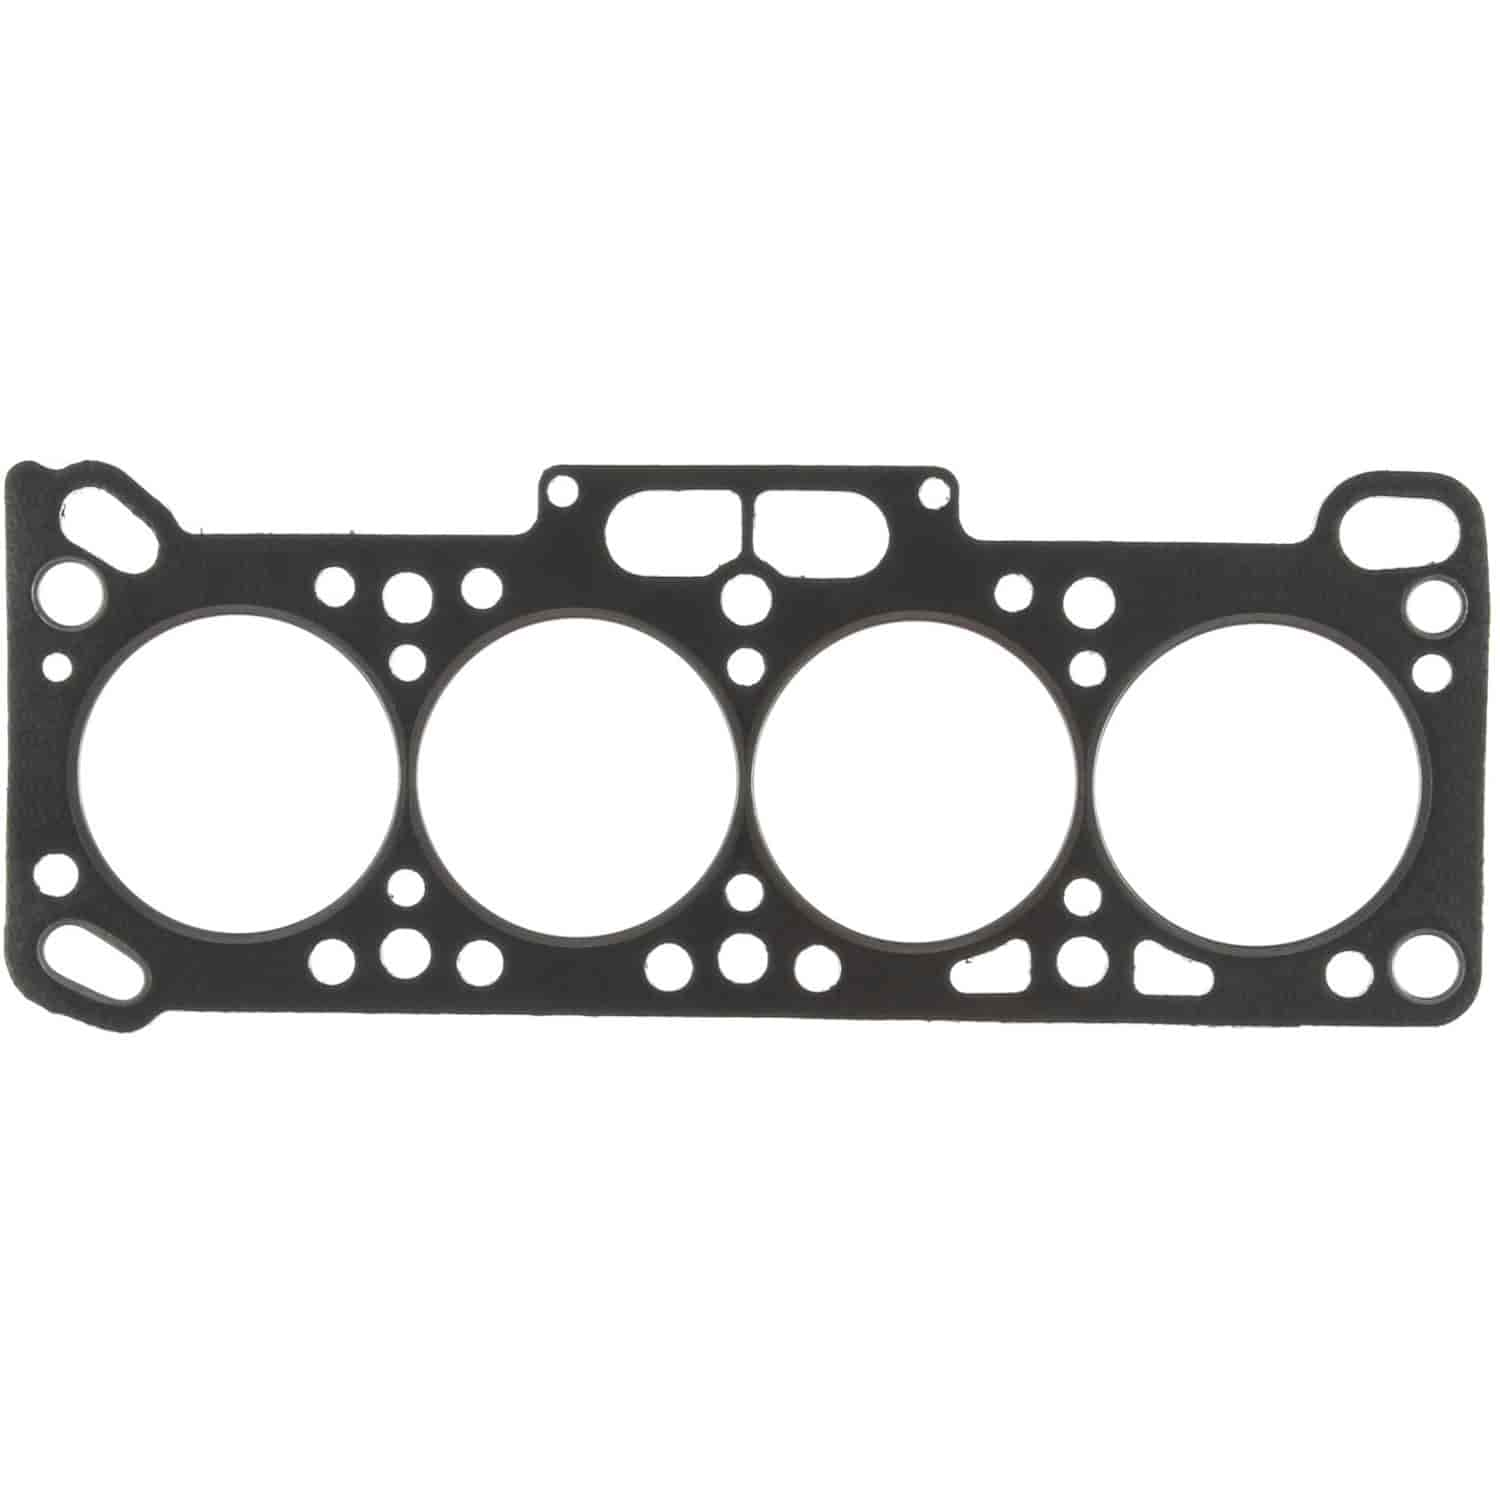 Clevite Mahle Cylinder Head Gasket Chev 235 Eng 53